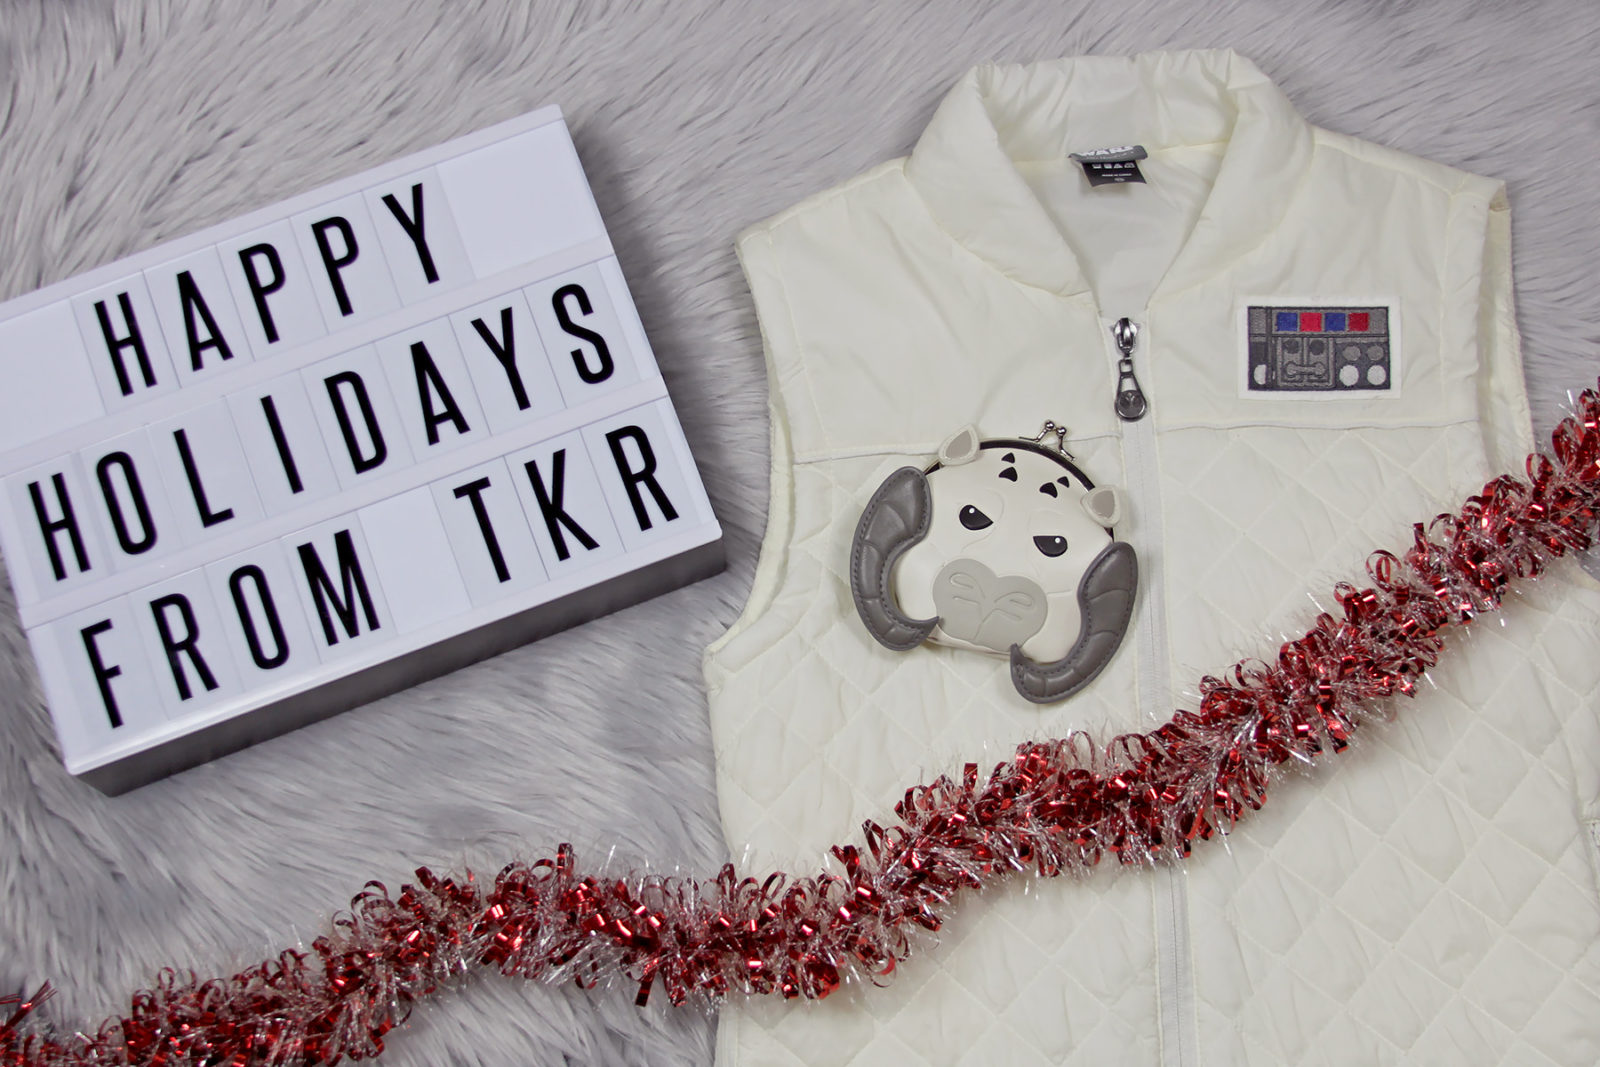 Happy Holidays from TKR for 2018!